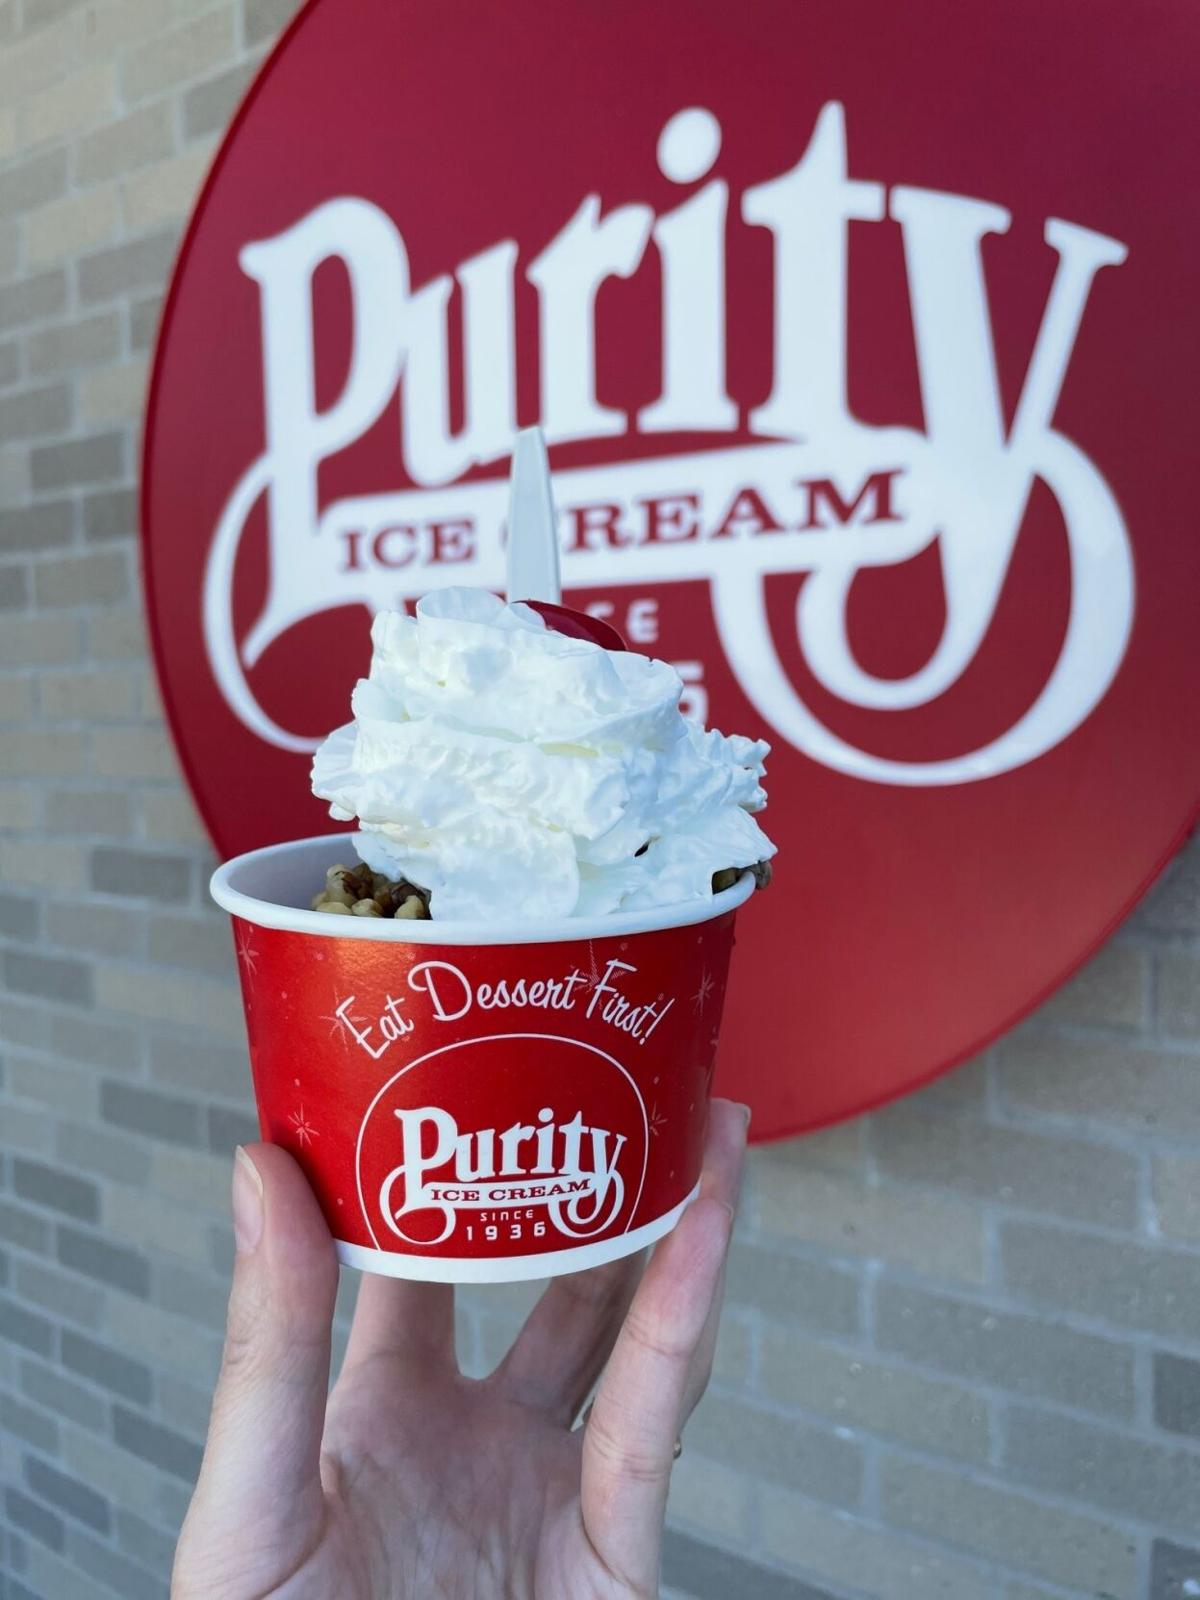 Purity ice cream Bowl in Ithaca